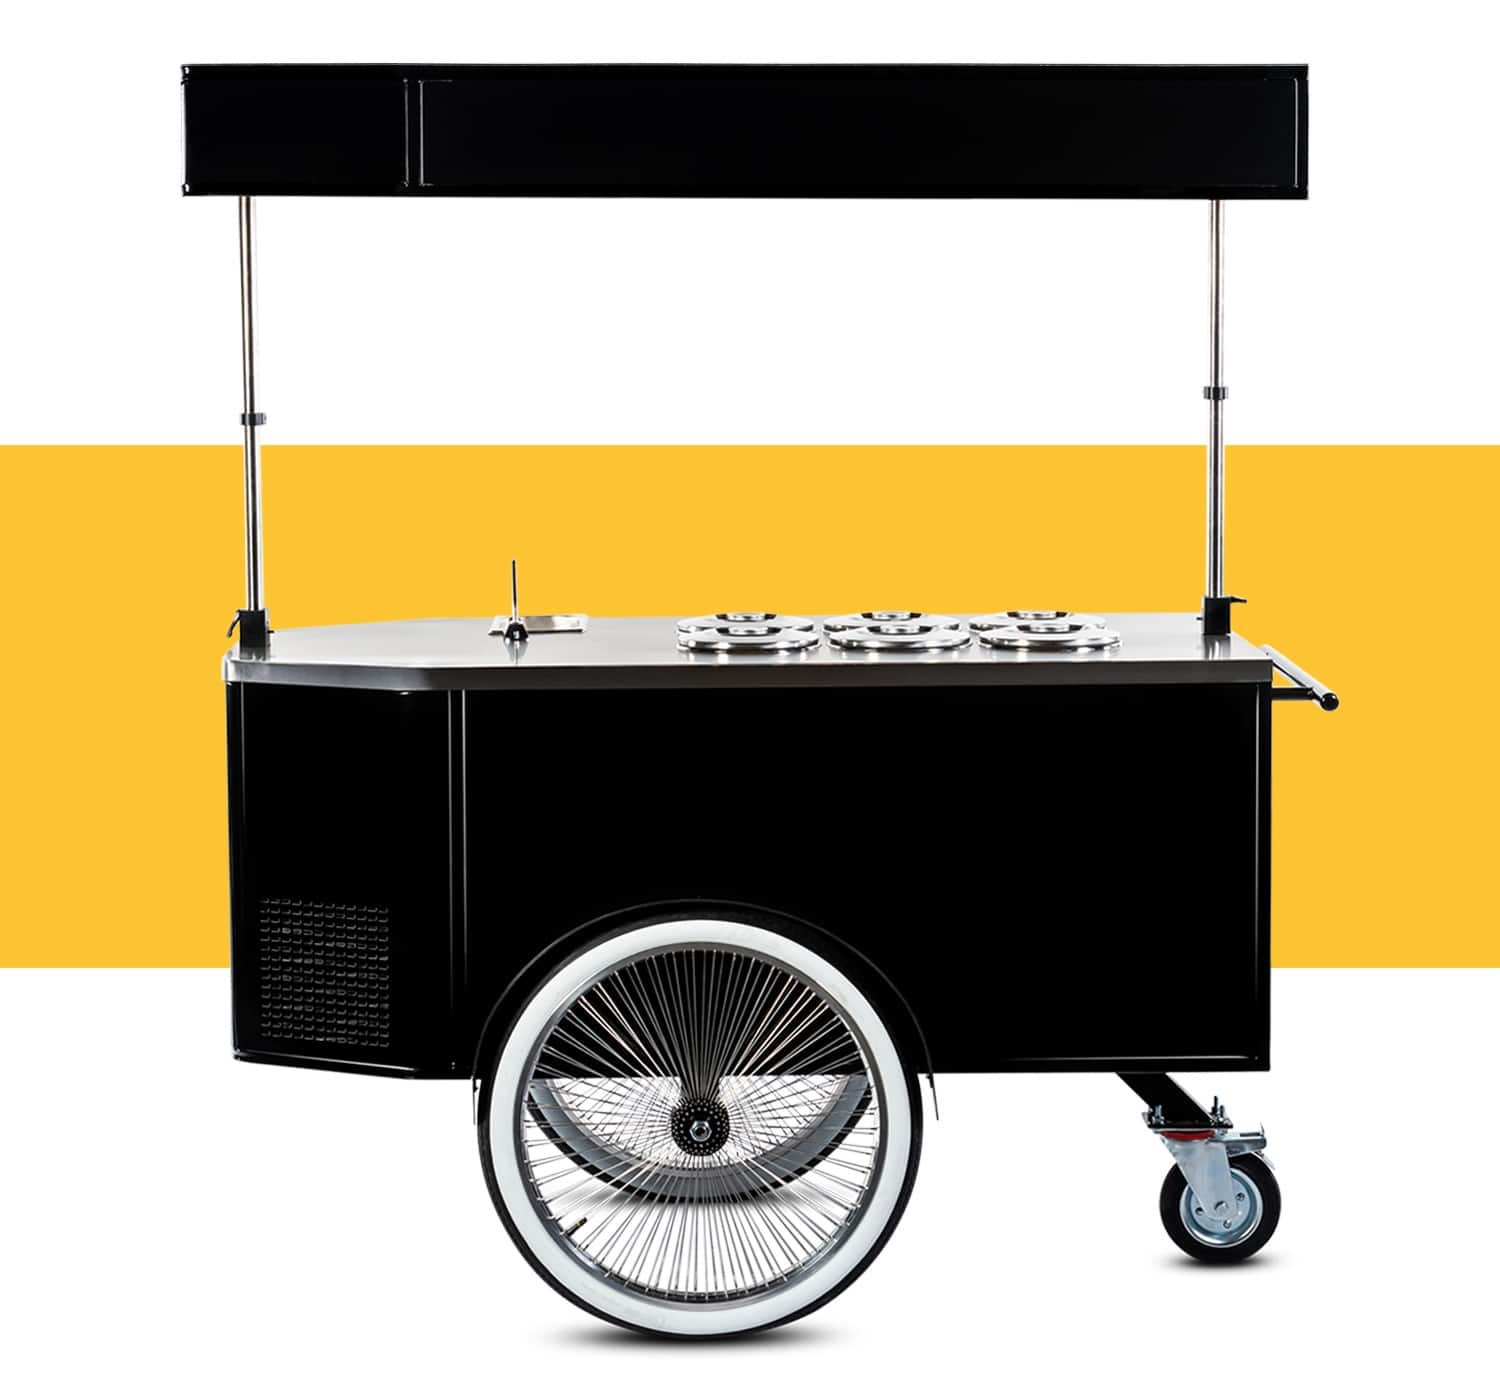 Gelato cart for sale by BizzOnWheels